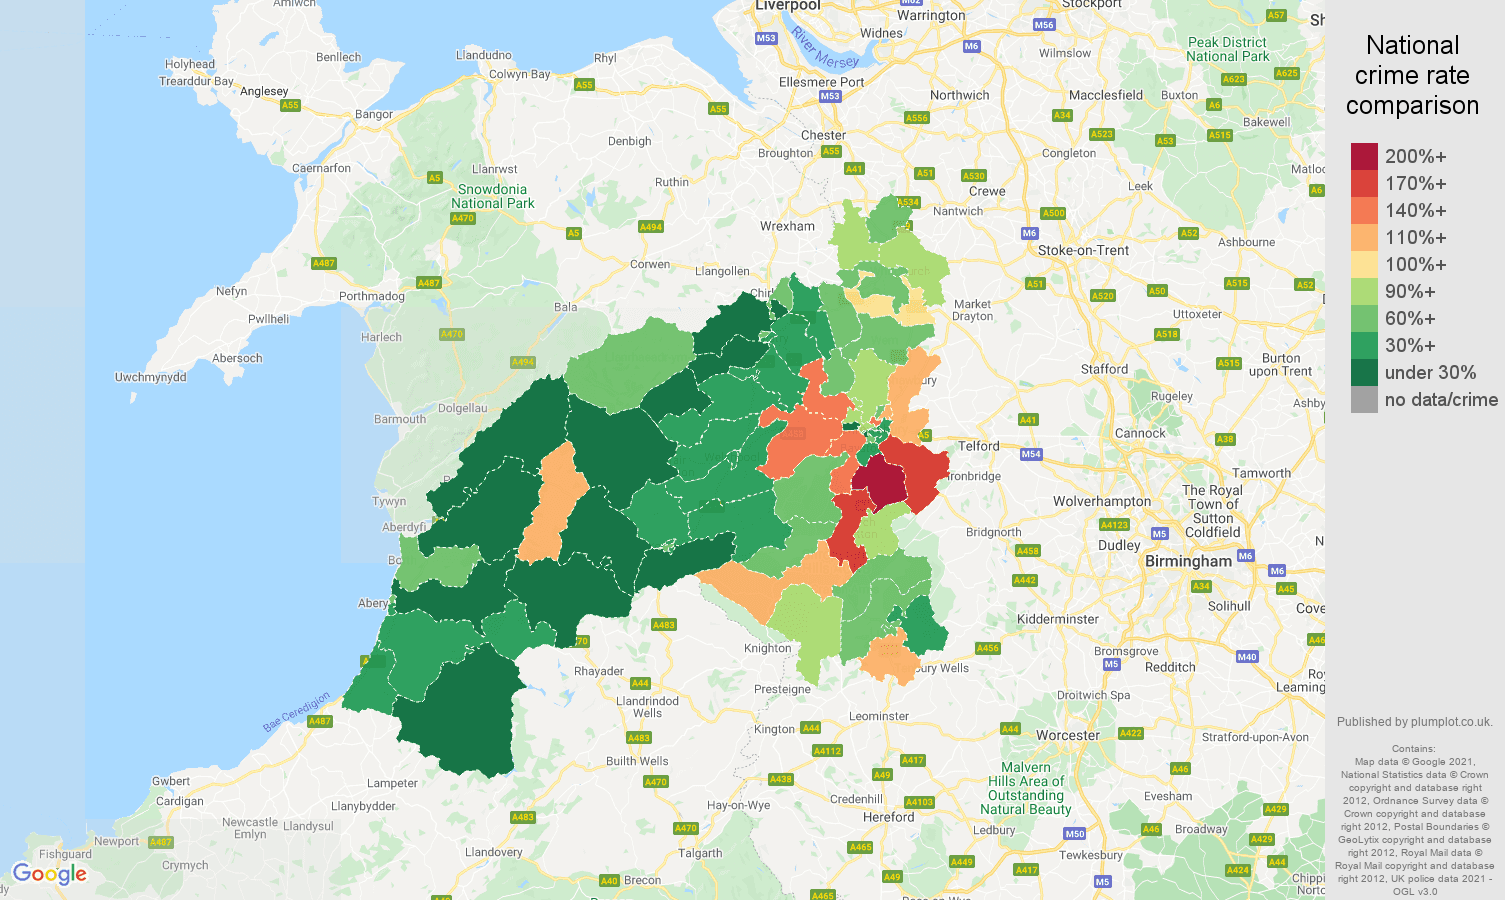 Shrewsbury burglary crime rate comparison map